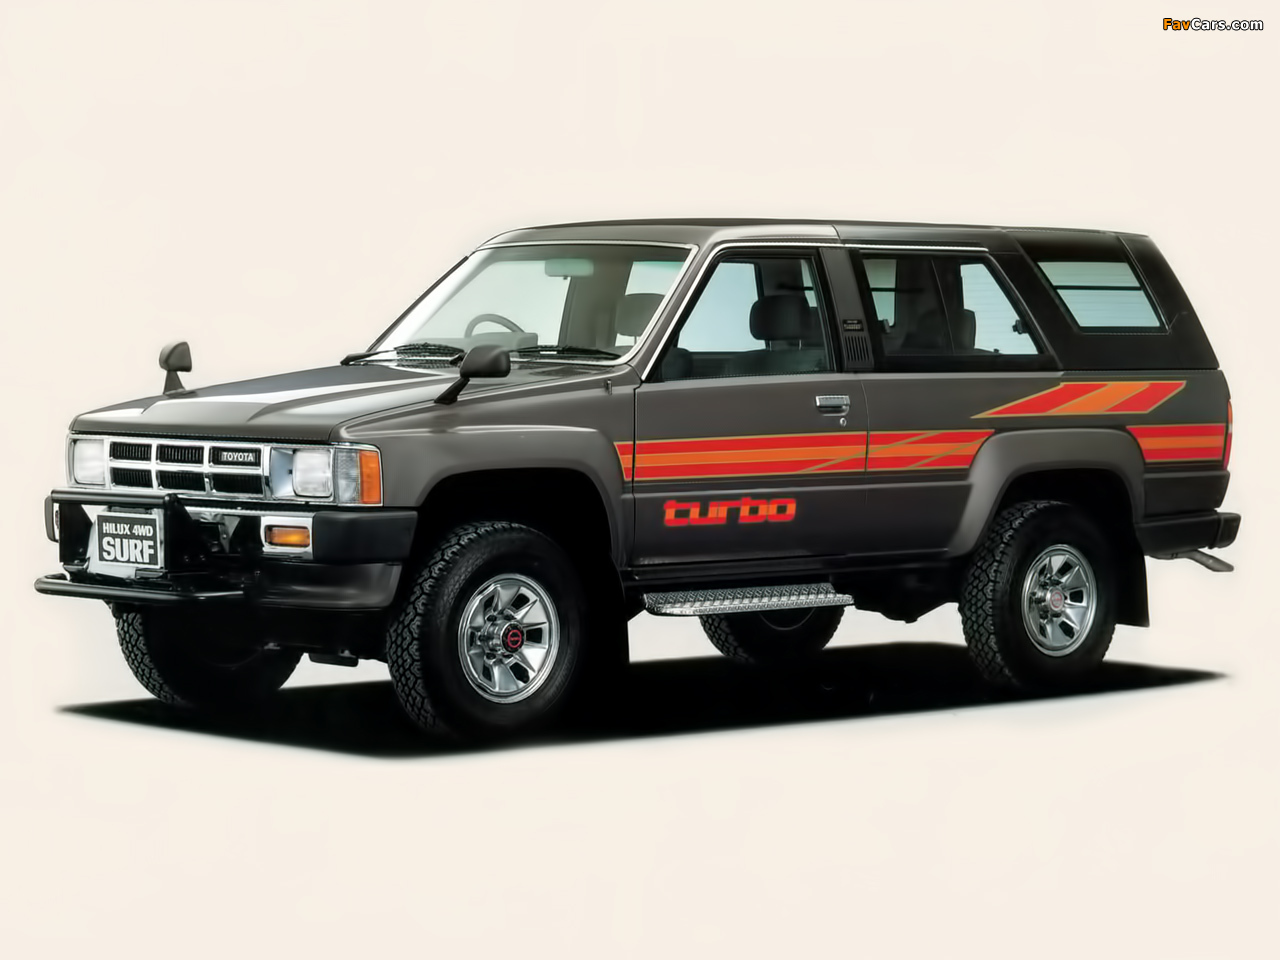 Photos Of Toyota Hilux Surf 1984 86 1280x960